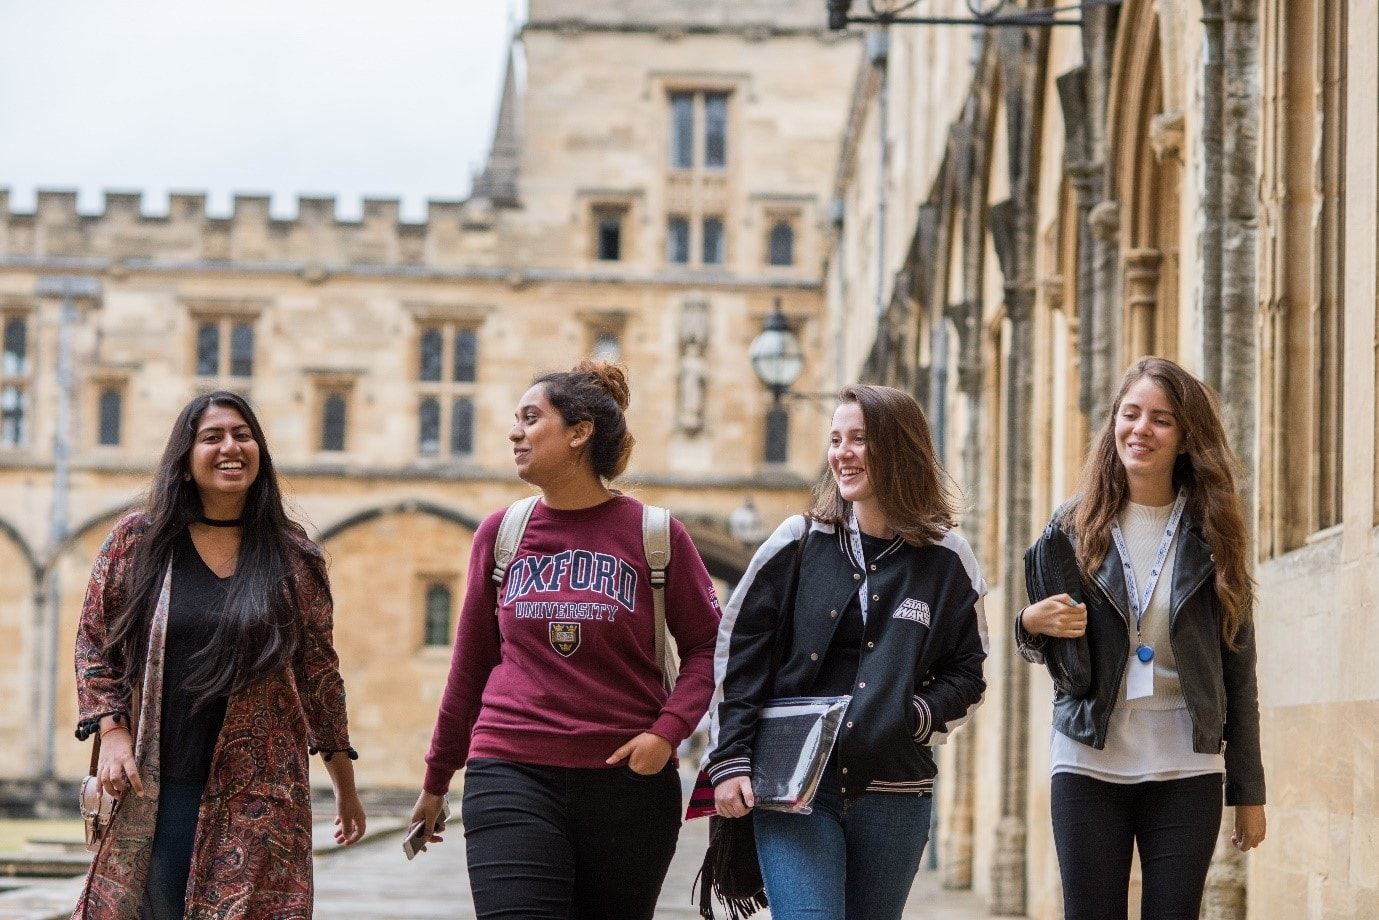 Oxford Summer Courses students walking at the University of Oxford